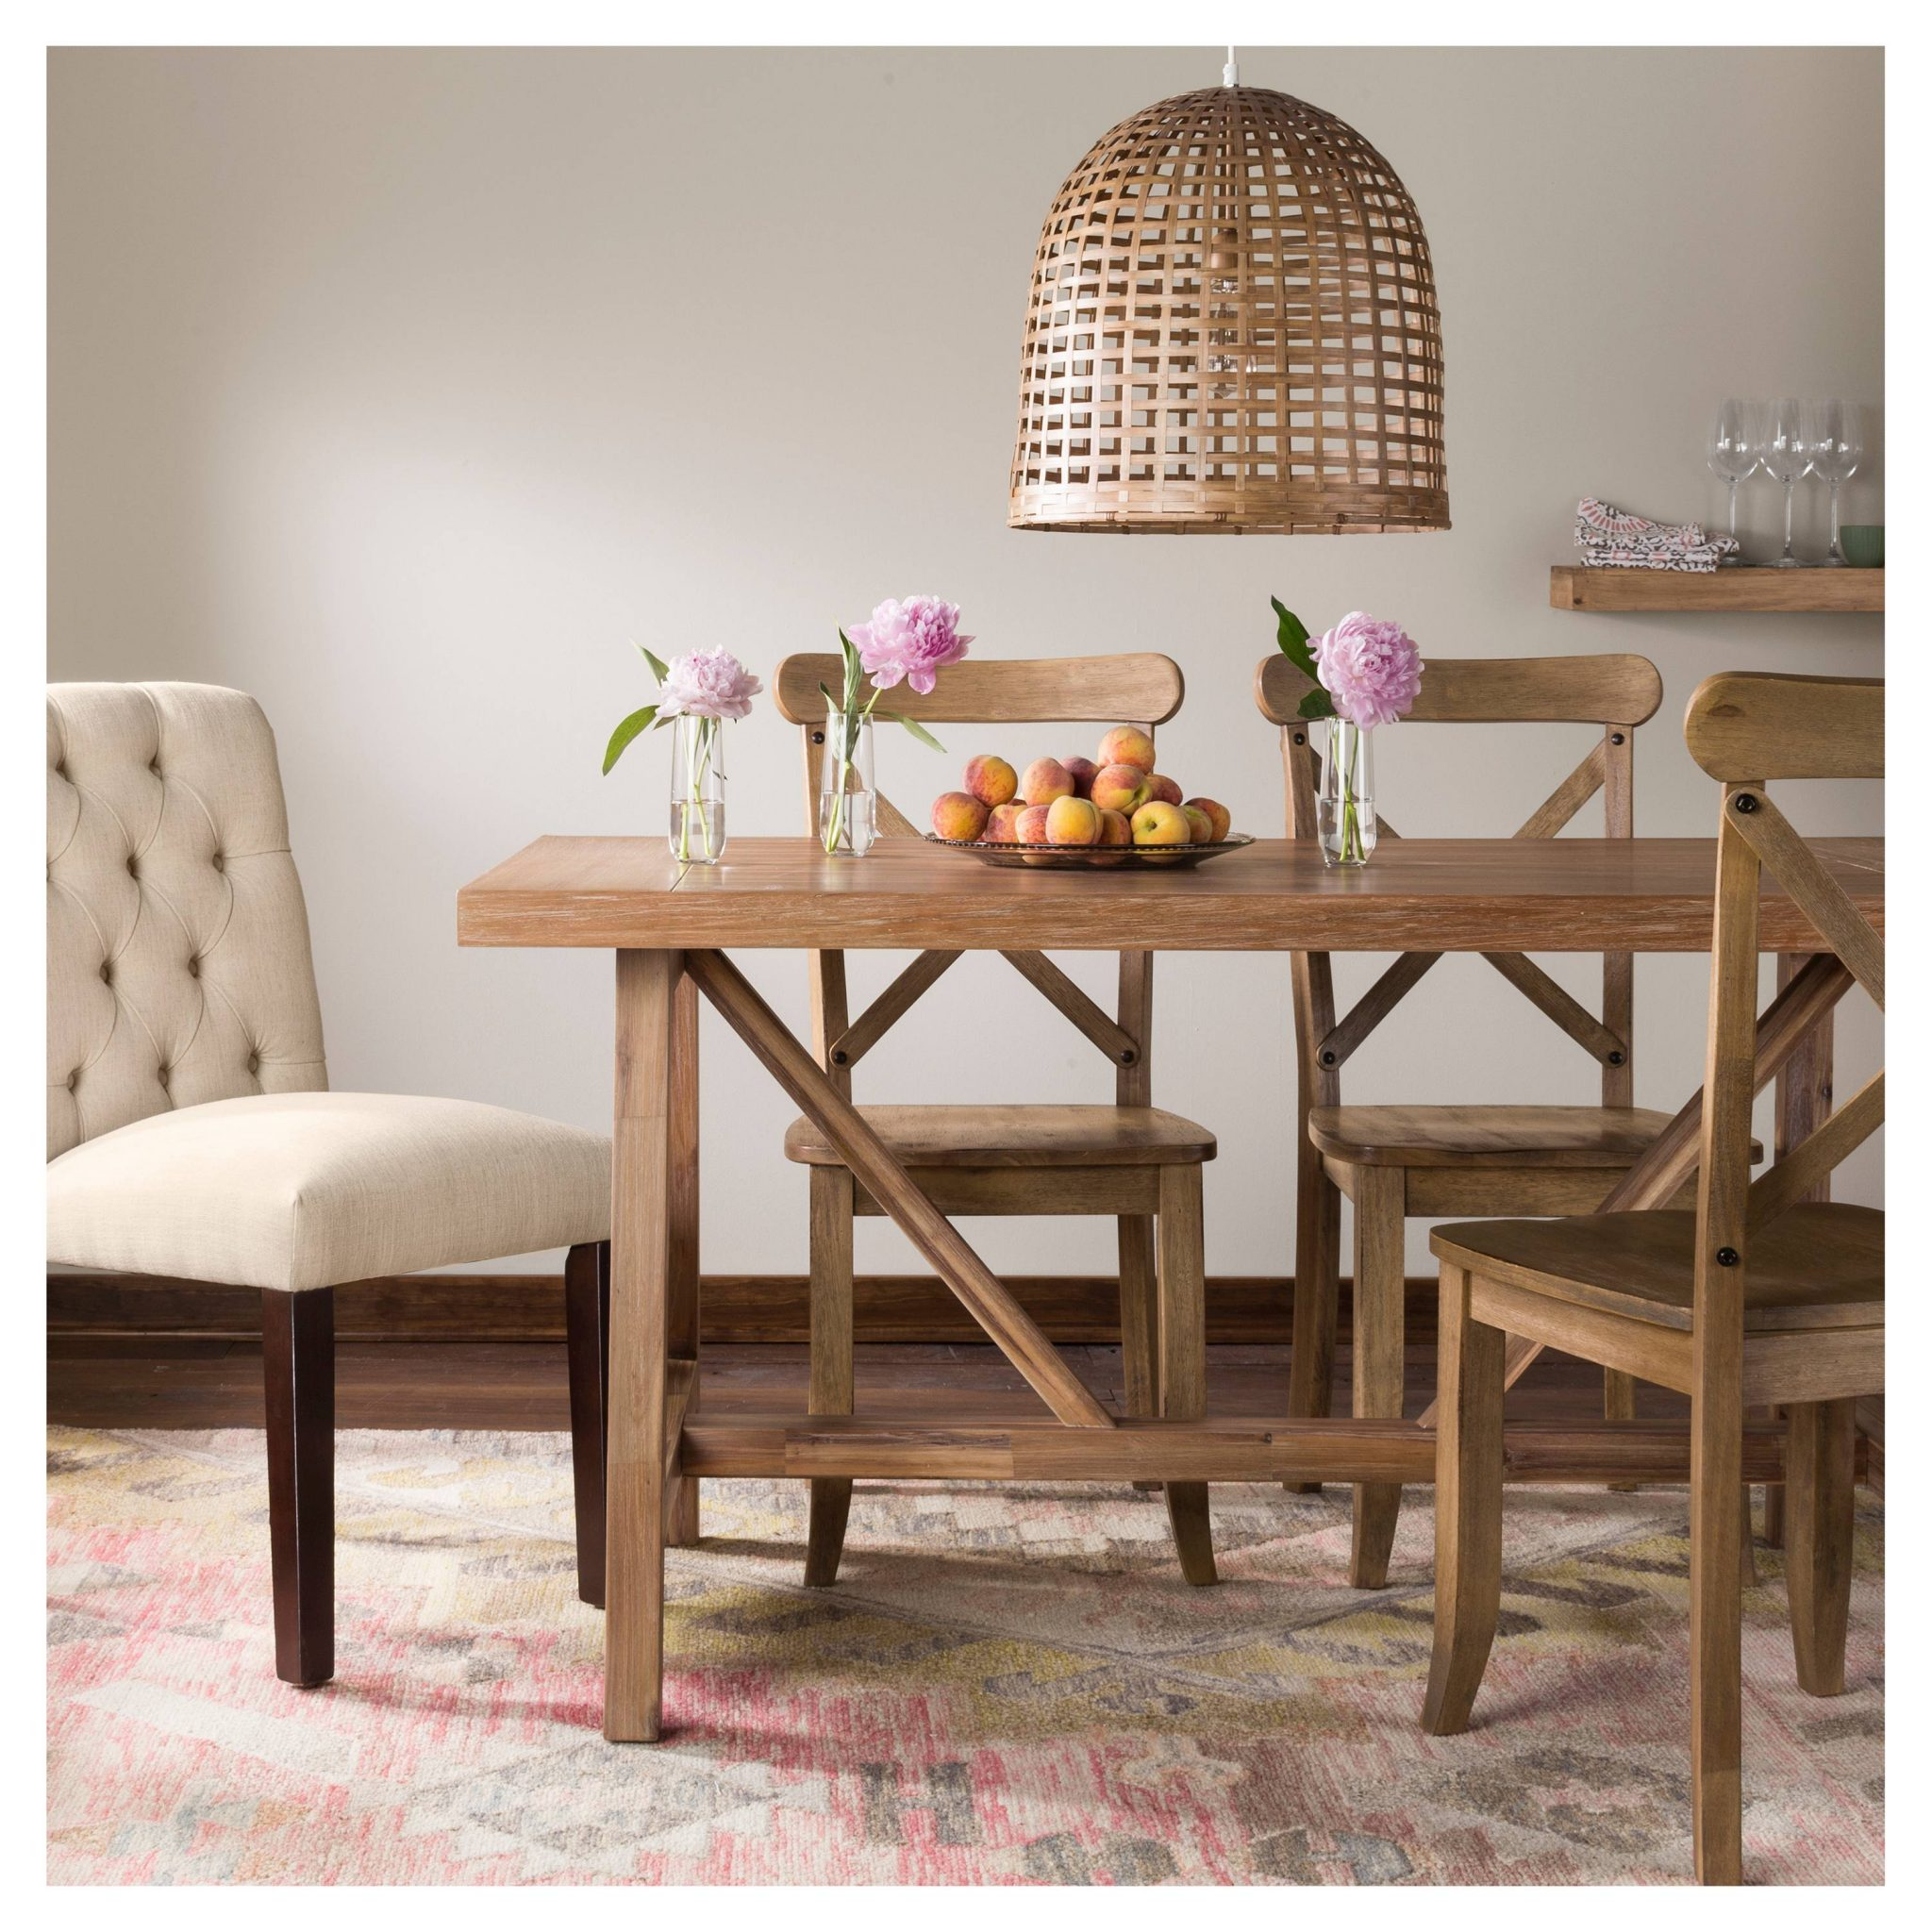 farmhouse table from target.jpeg